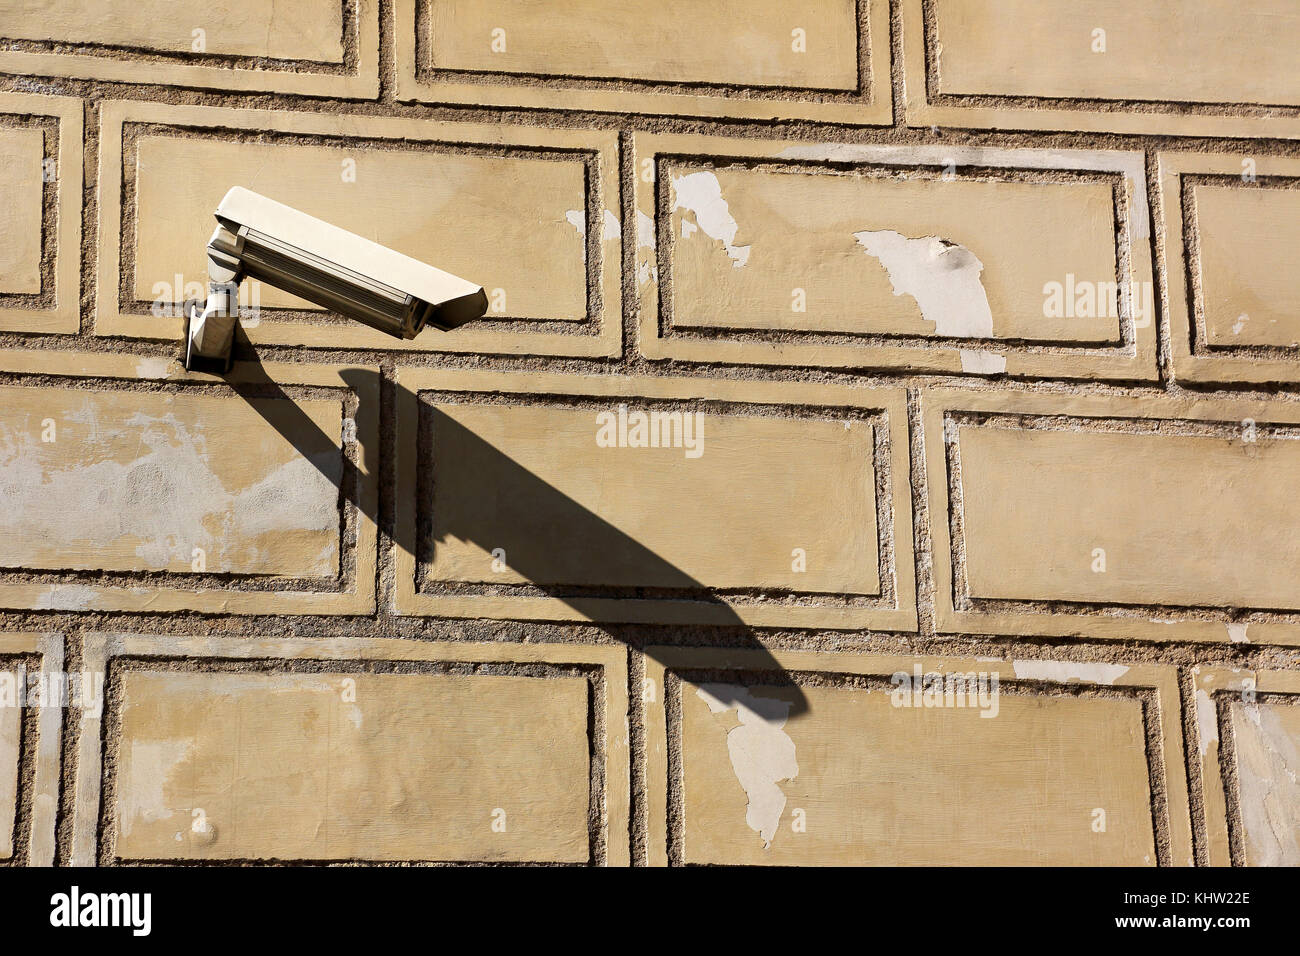 video surveillance camera for building security - Stock Image